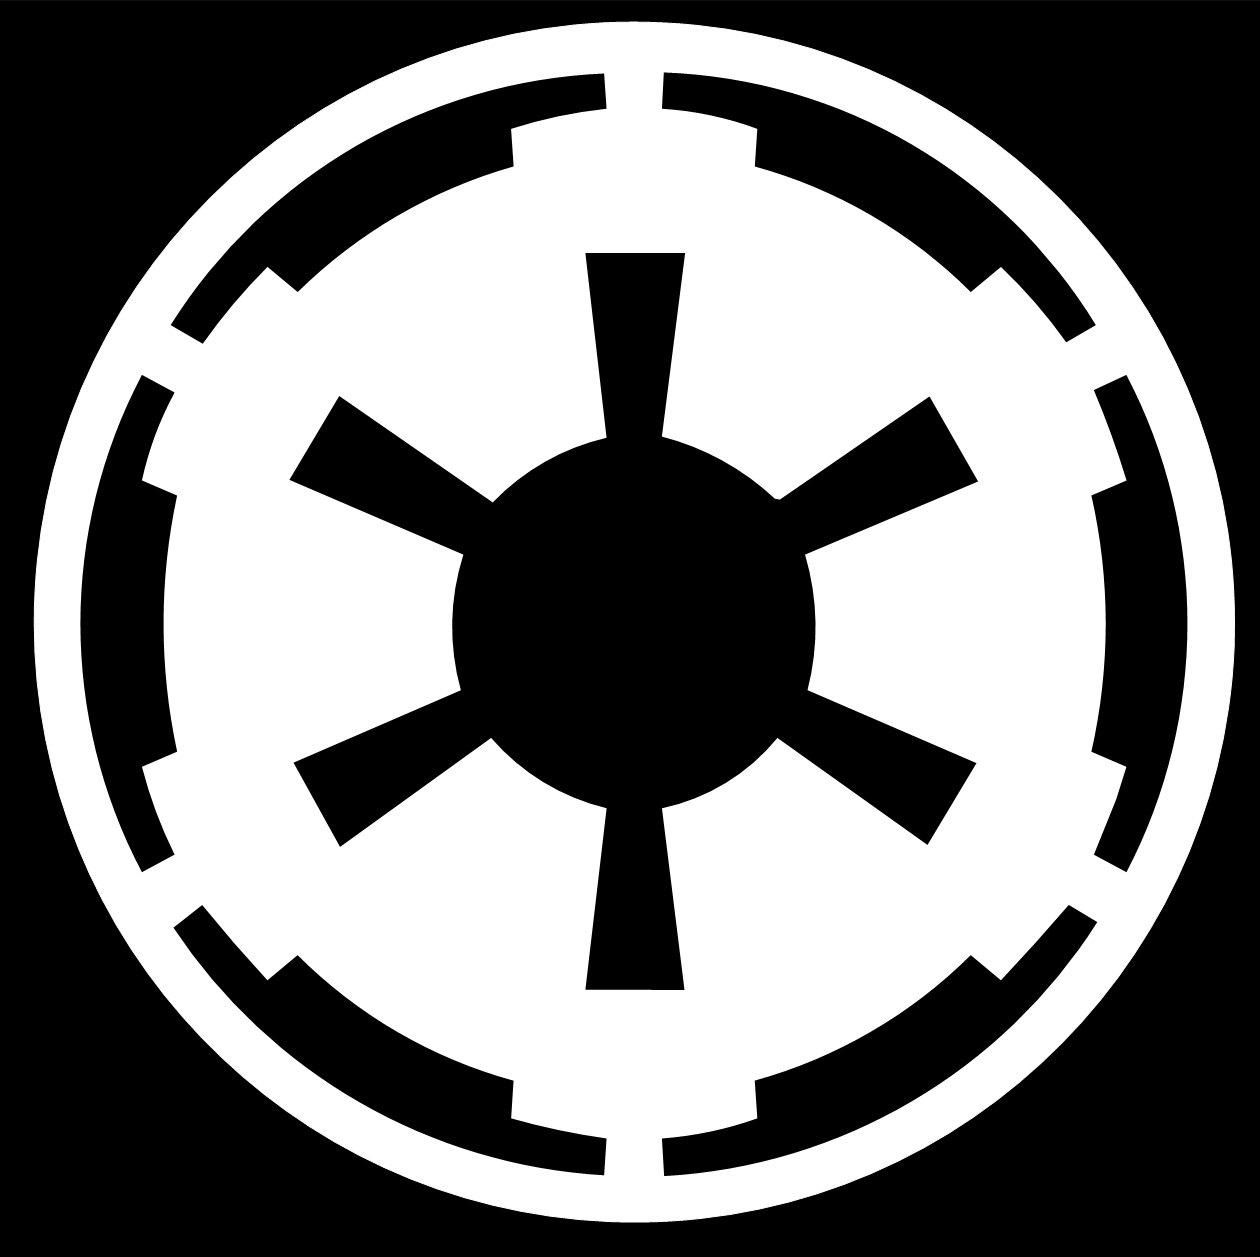 Imperial symbol star wars frees that you can download to n2 free image imperial symbol star wars frees that you can download to n2 biocorpaavc Images